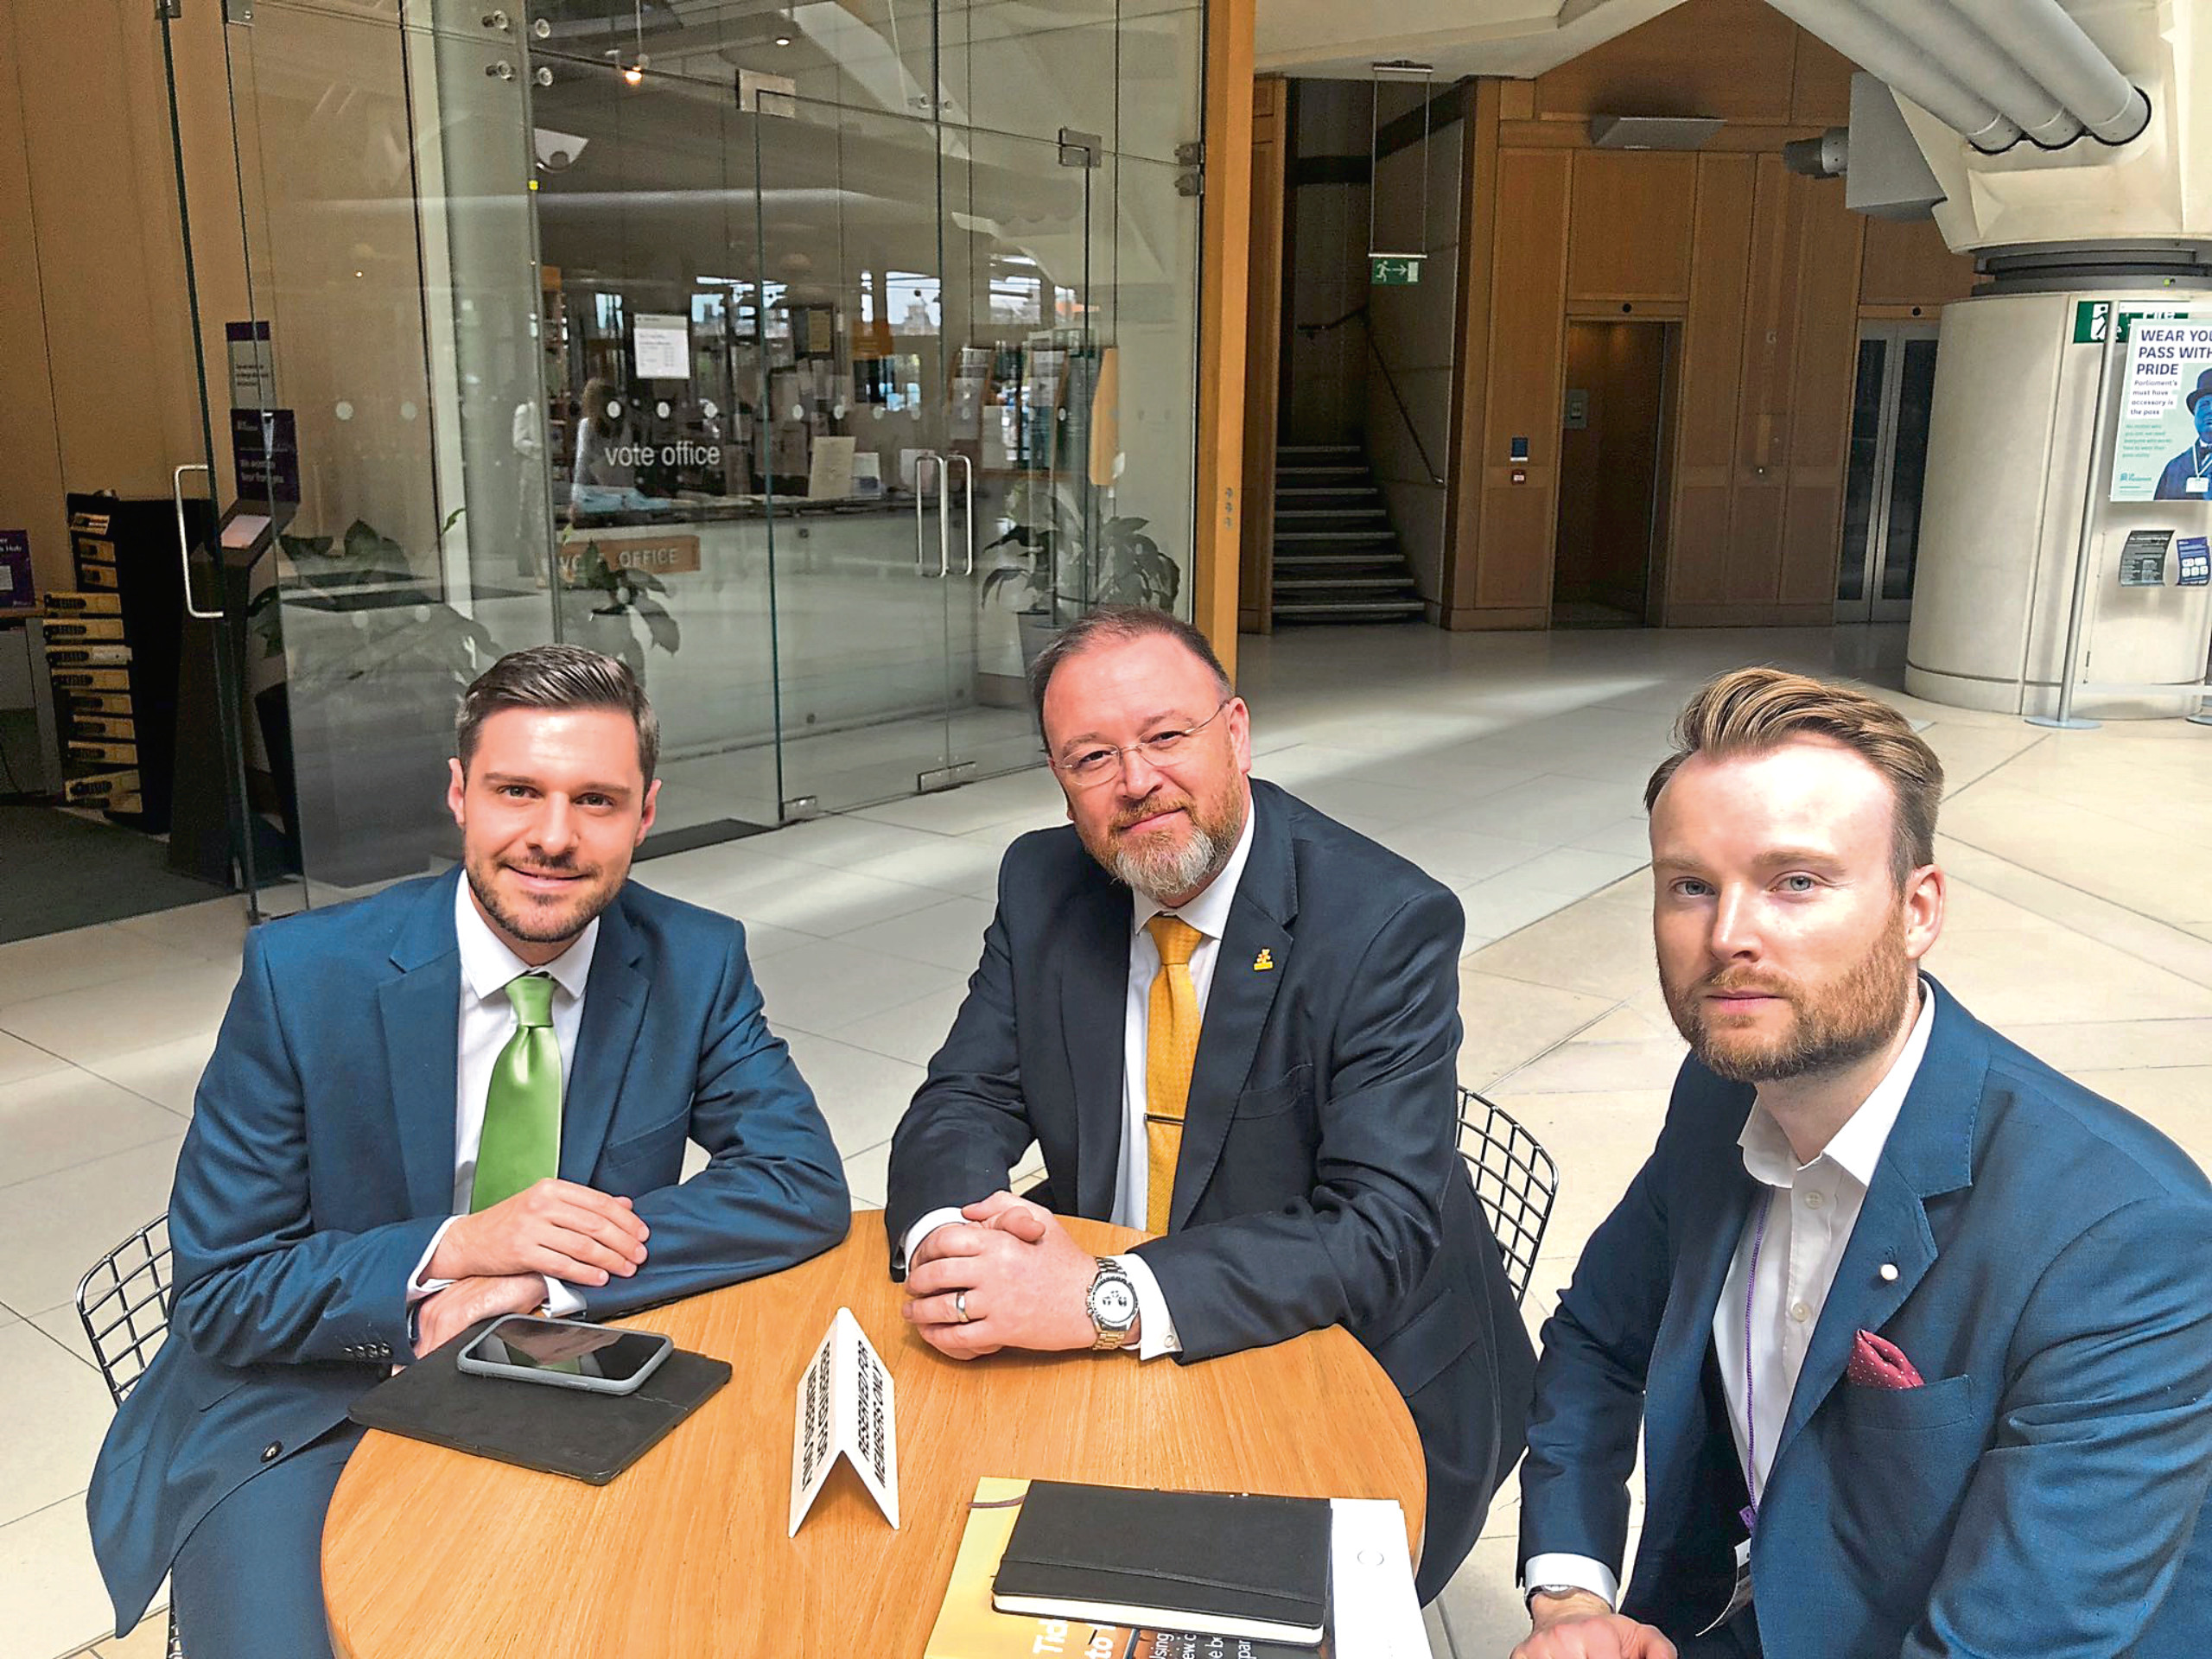 MPs Ross Thomson and David Duguid meeting with Richard Bassford from Virgin Atlantic